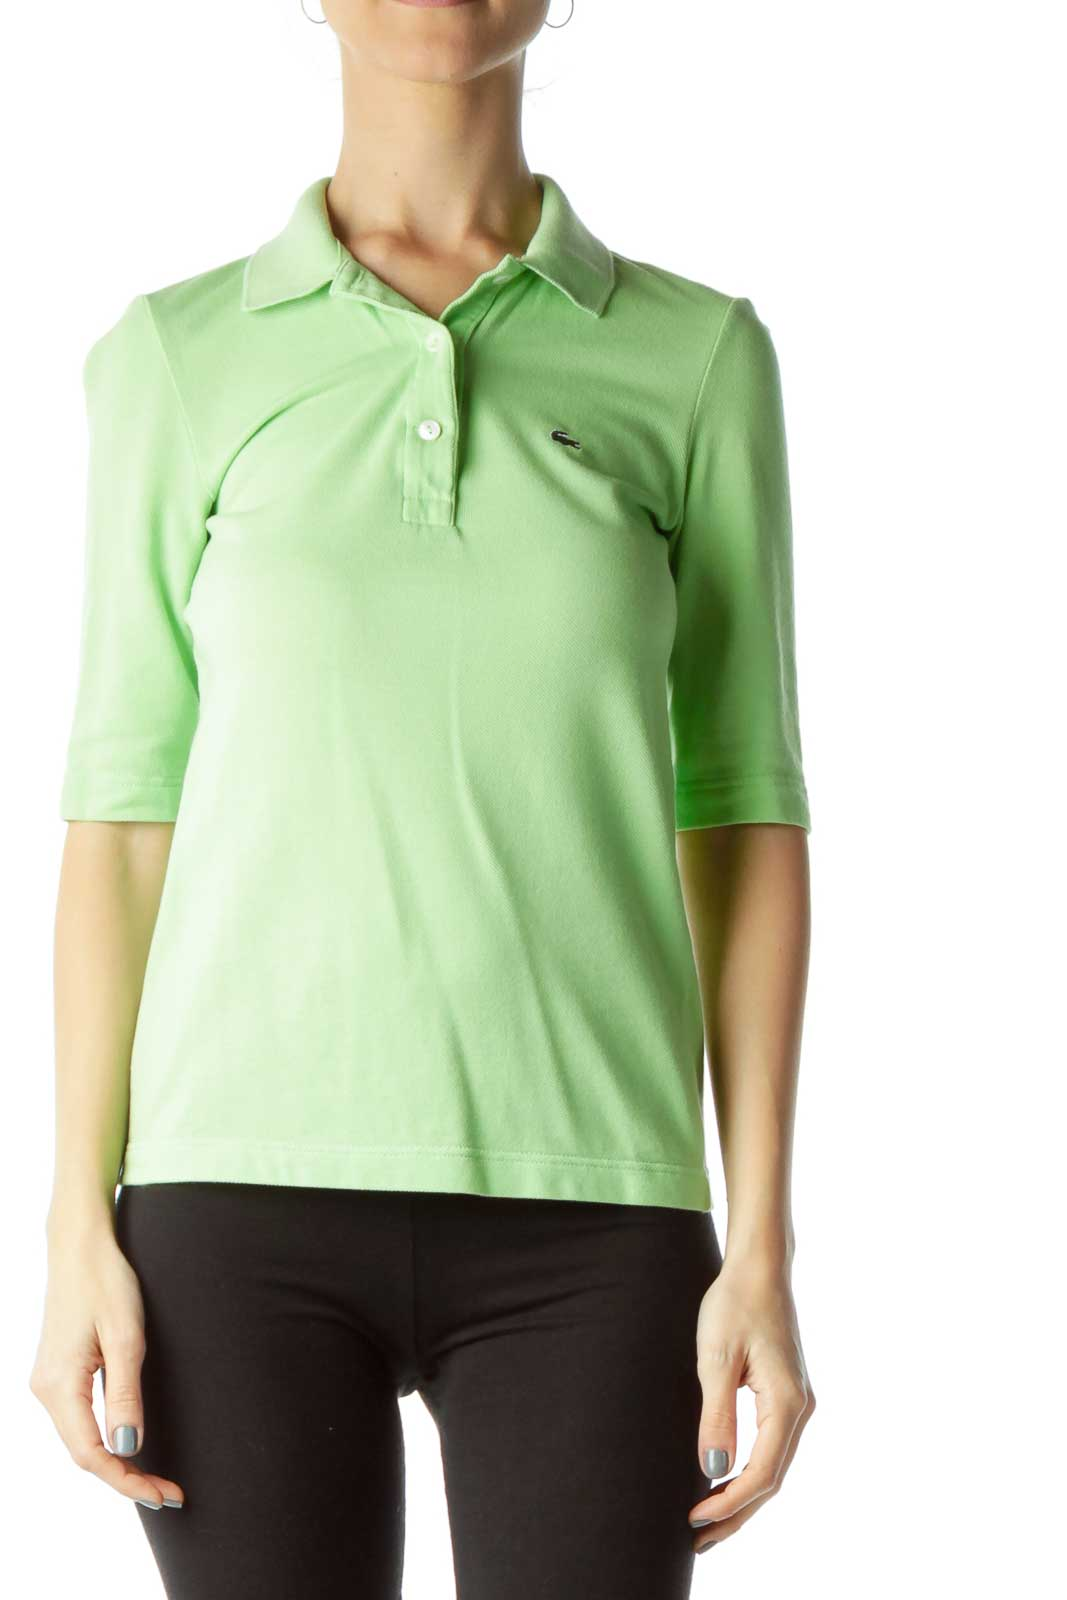 Green Polo Shirt Front